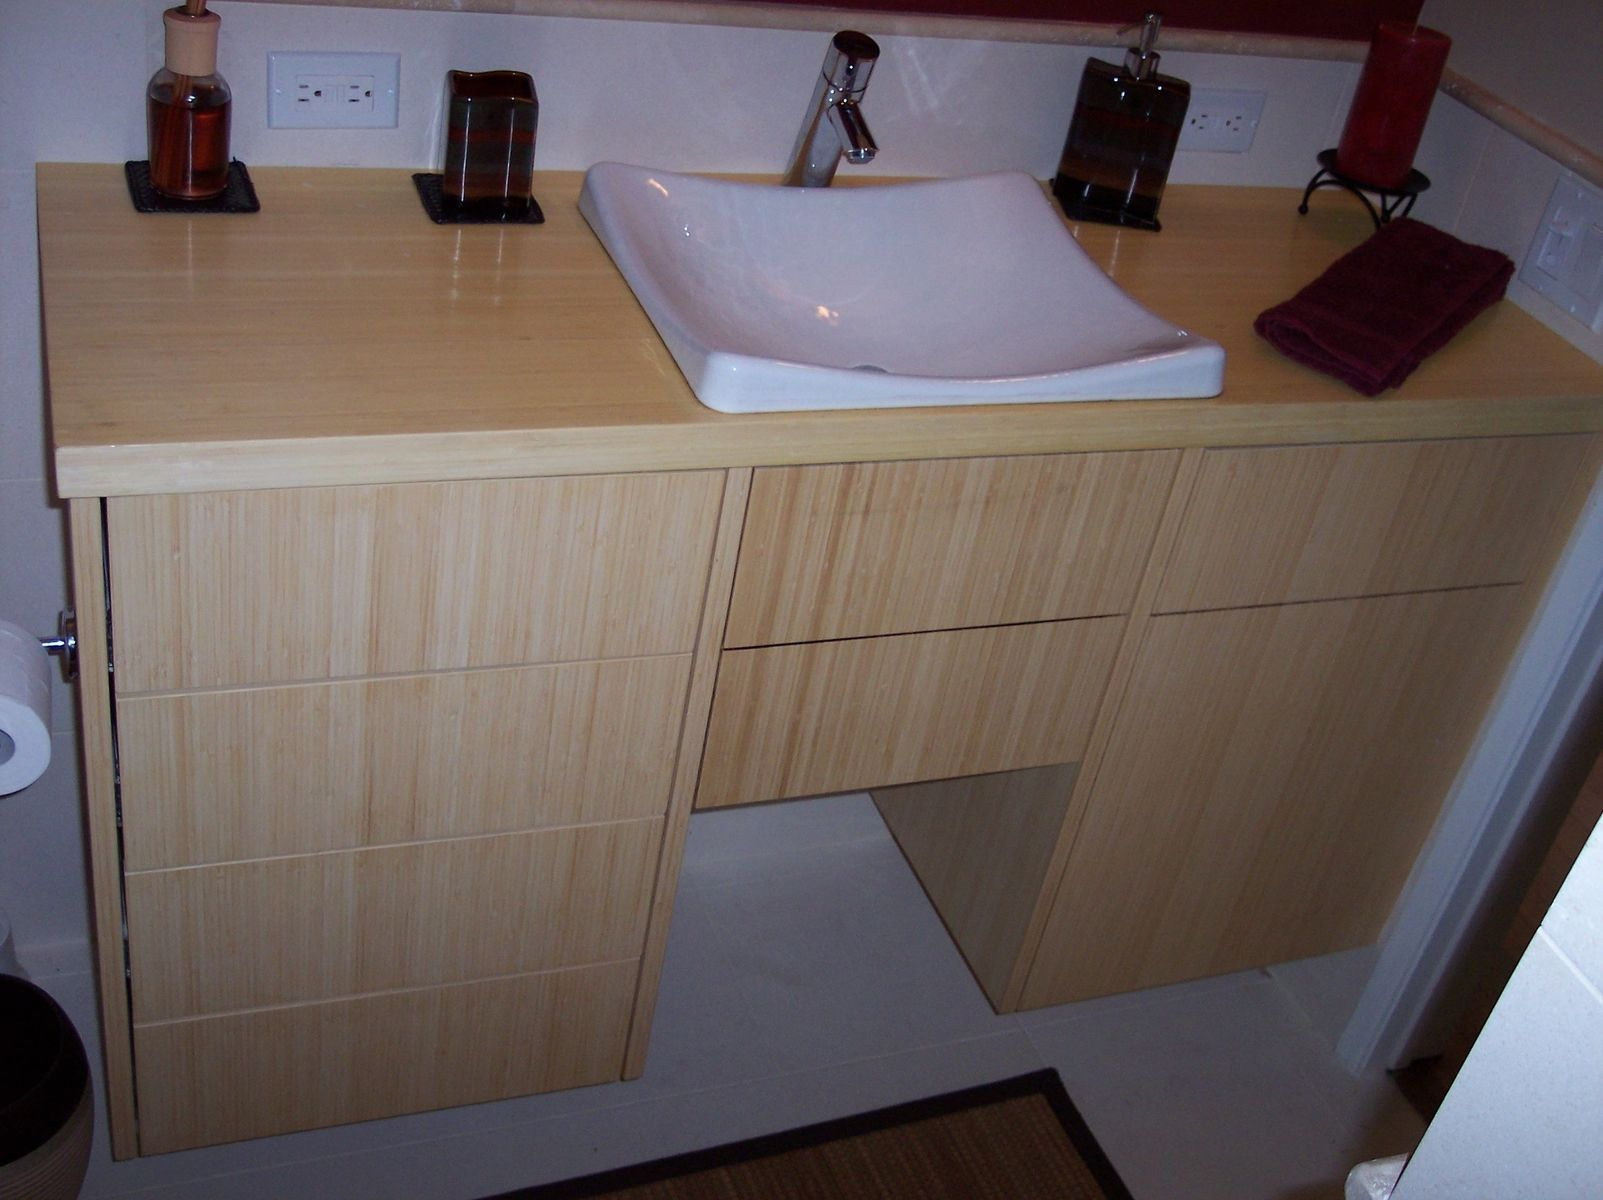 Bamboo Bathroom Cabinet: Custom Bamboo Bathroom Vanity By Mc Keown Design